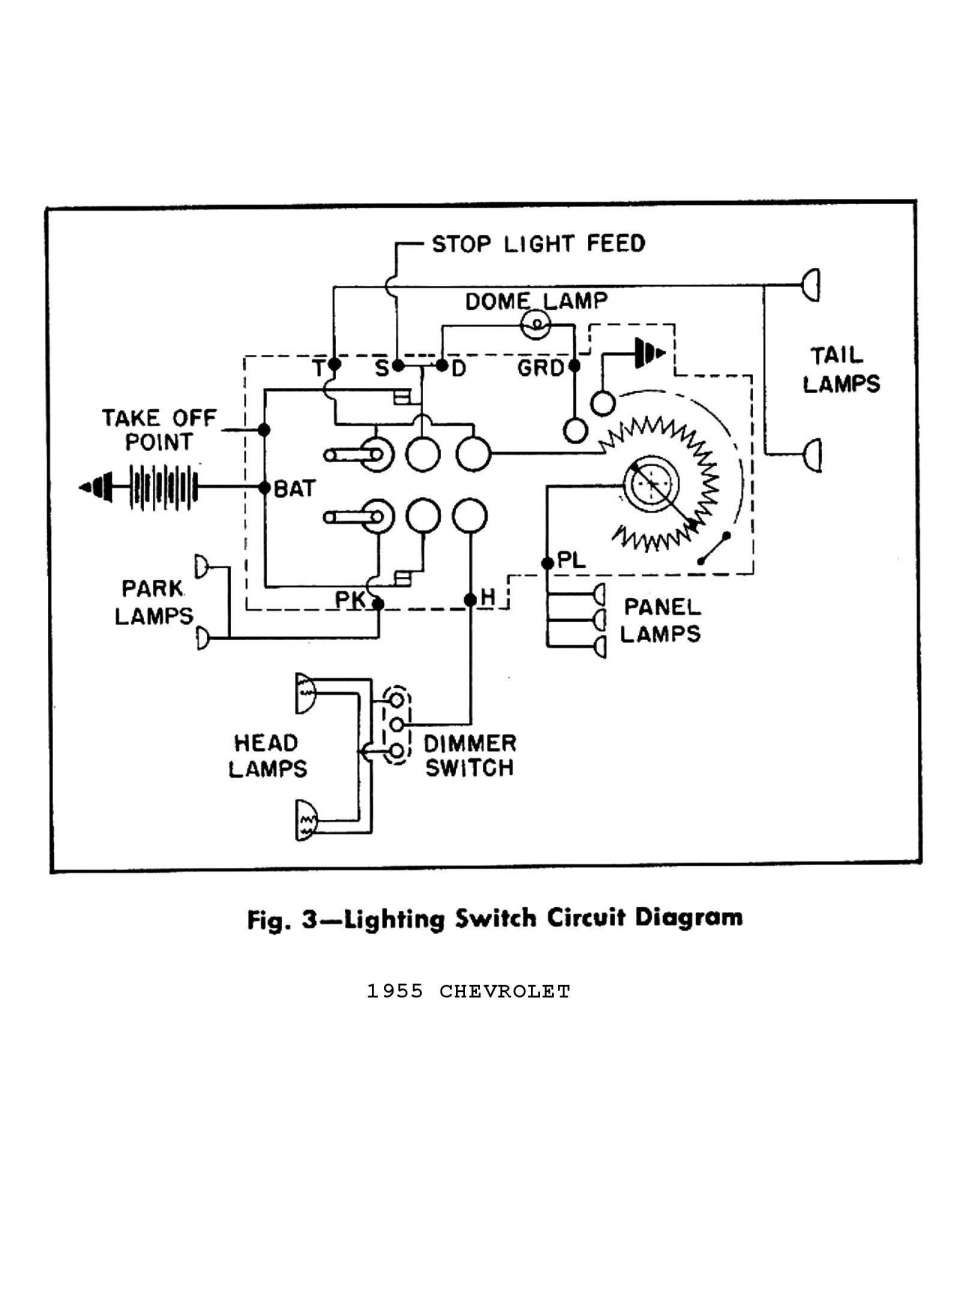 1955 corvette wiring diagram 924 best wiring chart picture images in 2020 diagram  electrical  924 best wiring chart picture images in